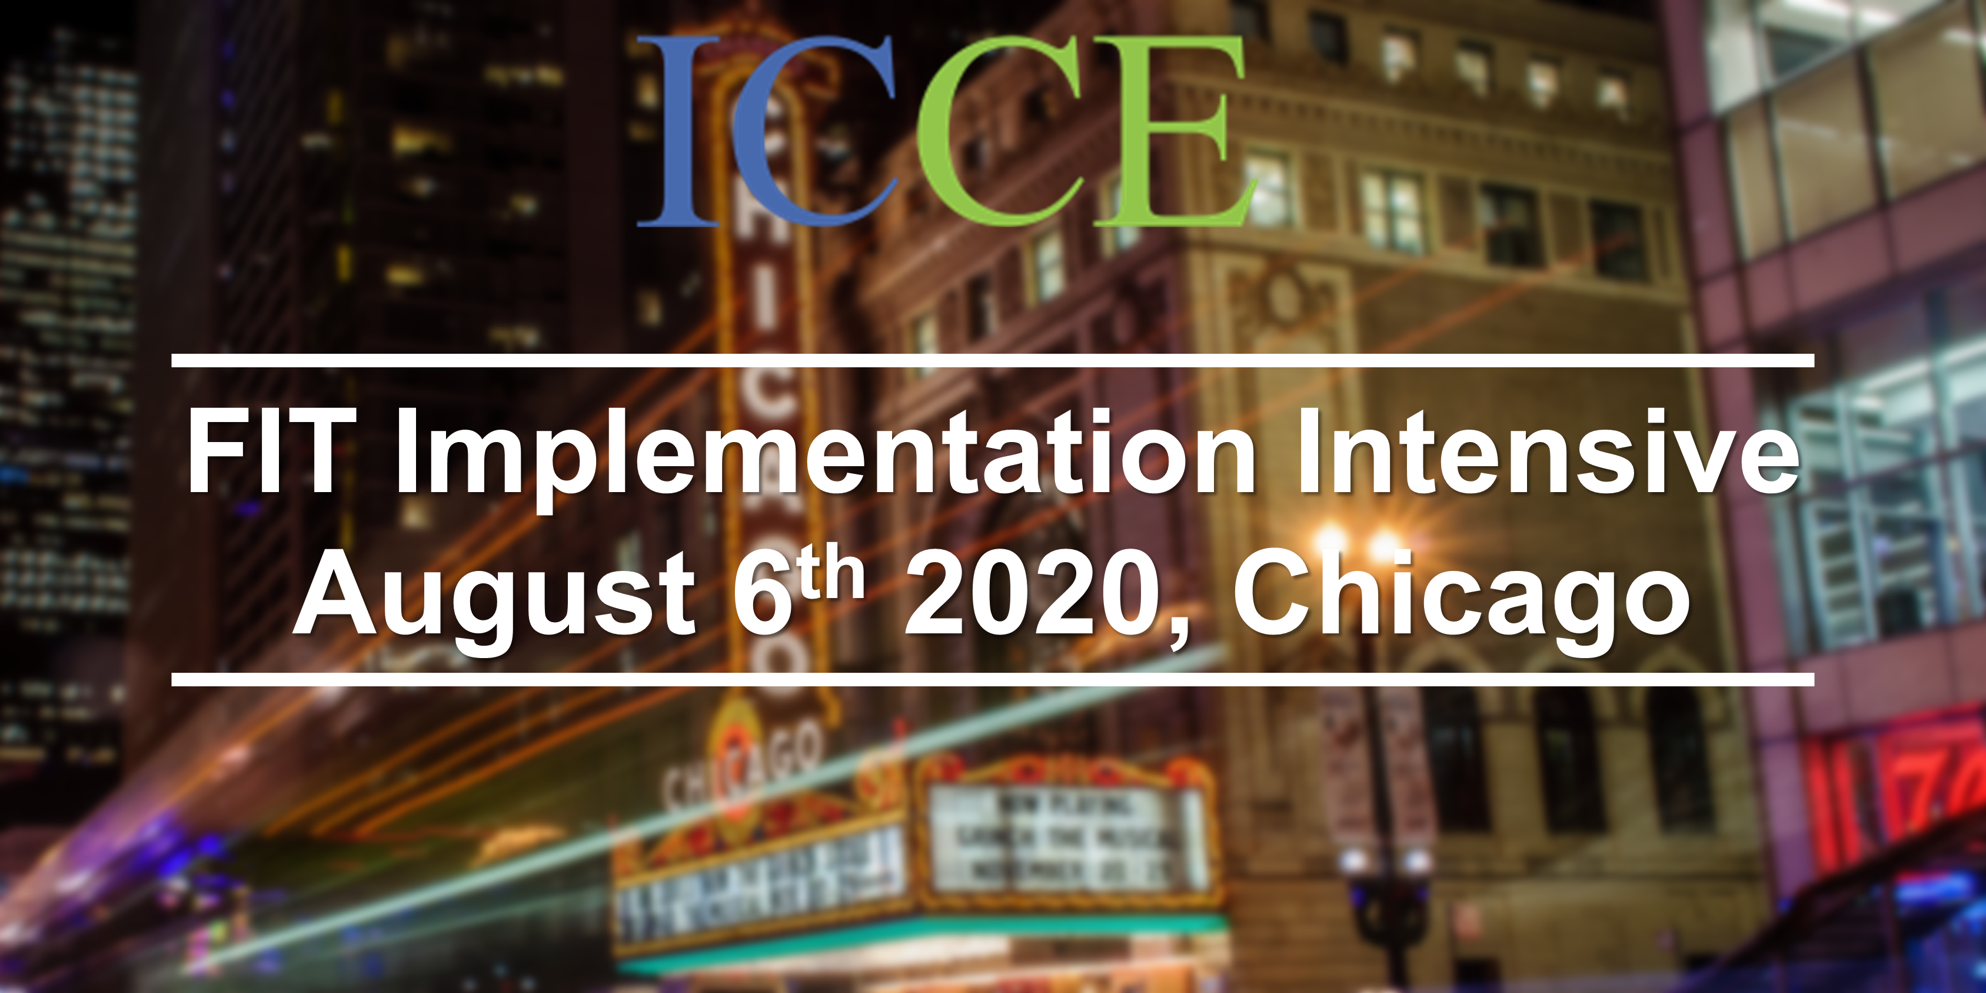 FIT Implementation Intensive 2020 - ICCE